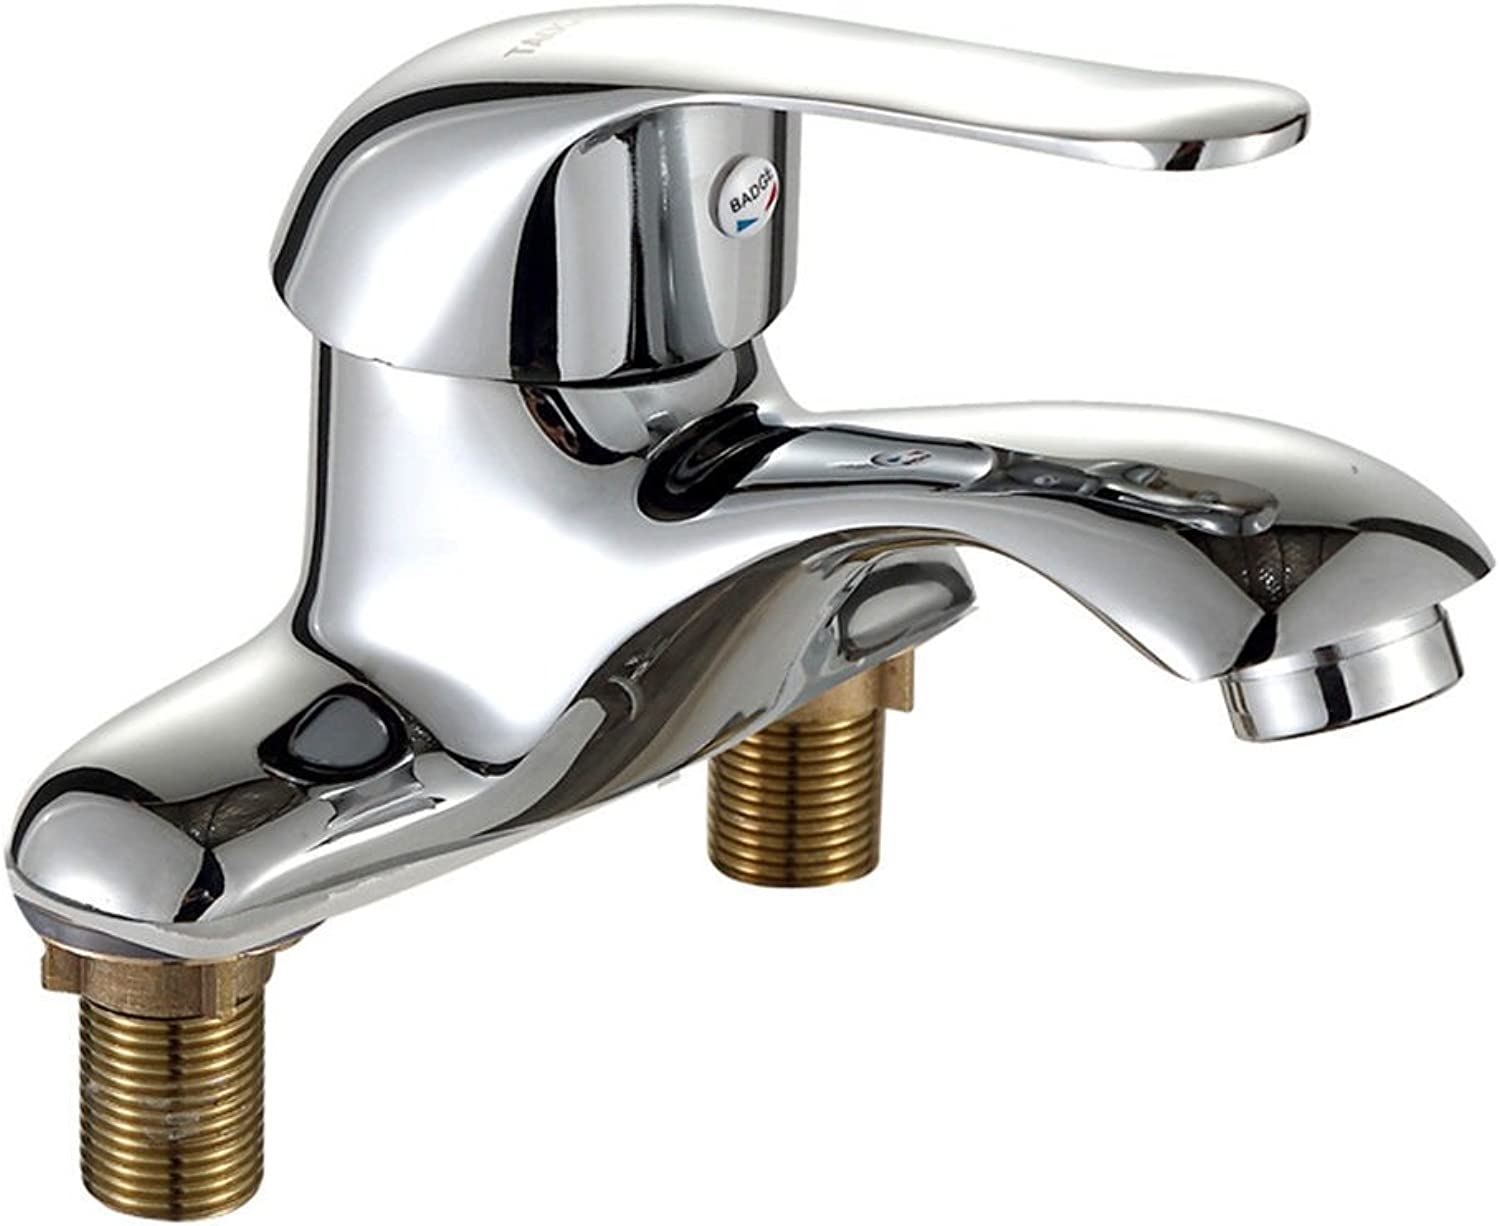 Gyps Faucet Bathroom Brass Basin Mixer Tap Bathroom Kitchen Sink Tap 2?Tap Hole Basin Faucet Hot and Cold Basin Faucet Three Holes,